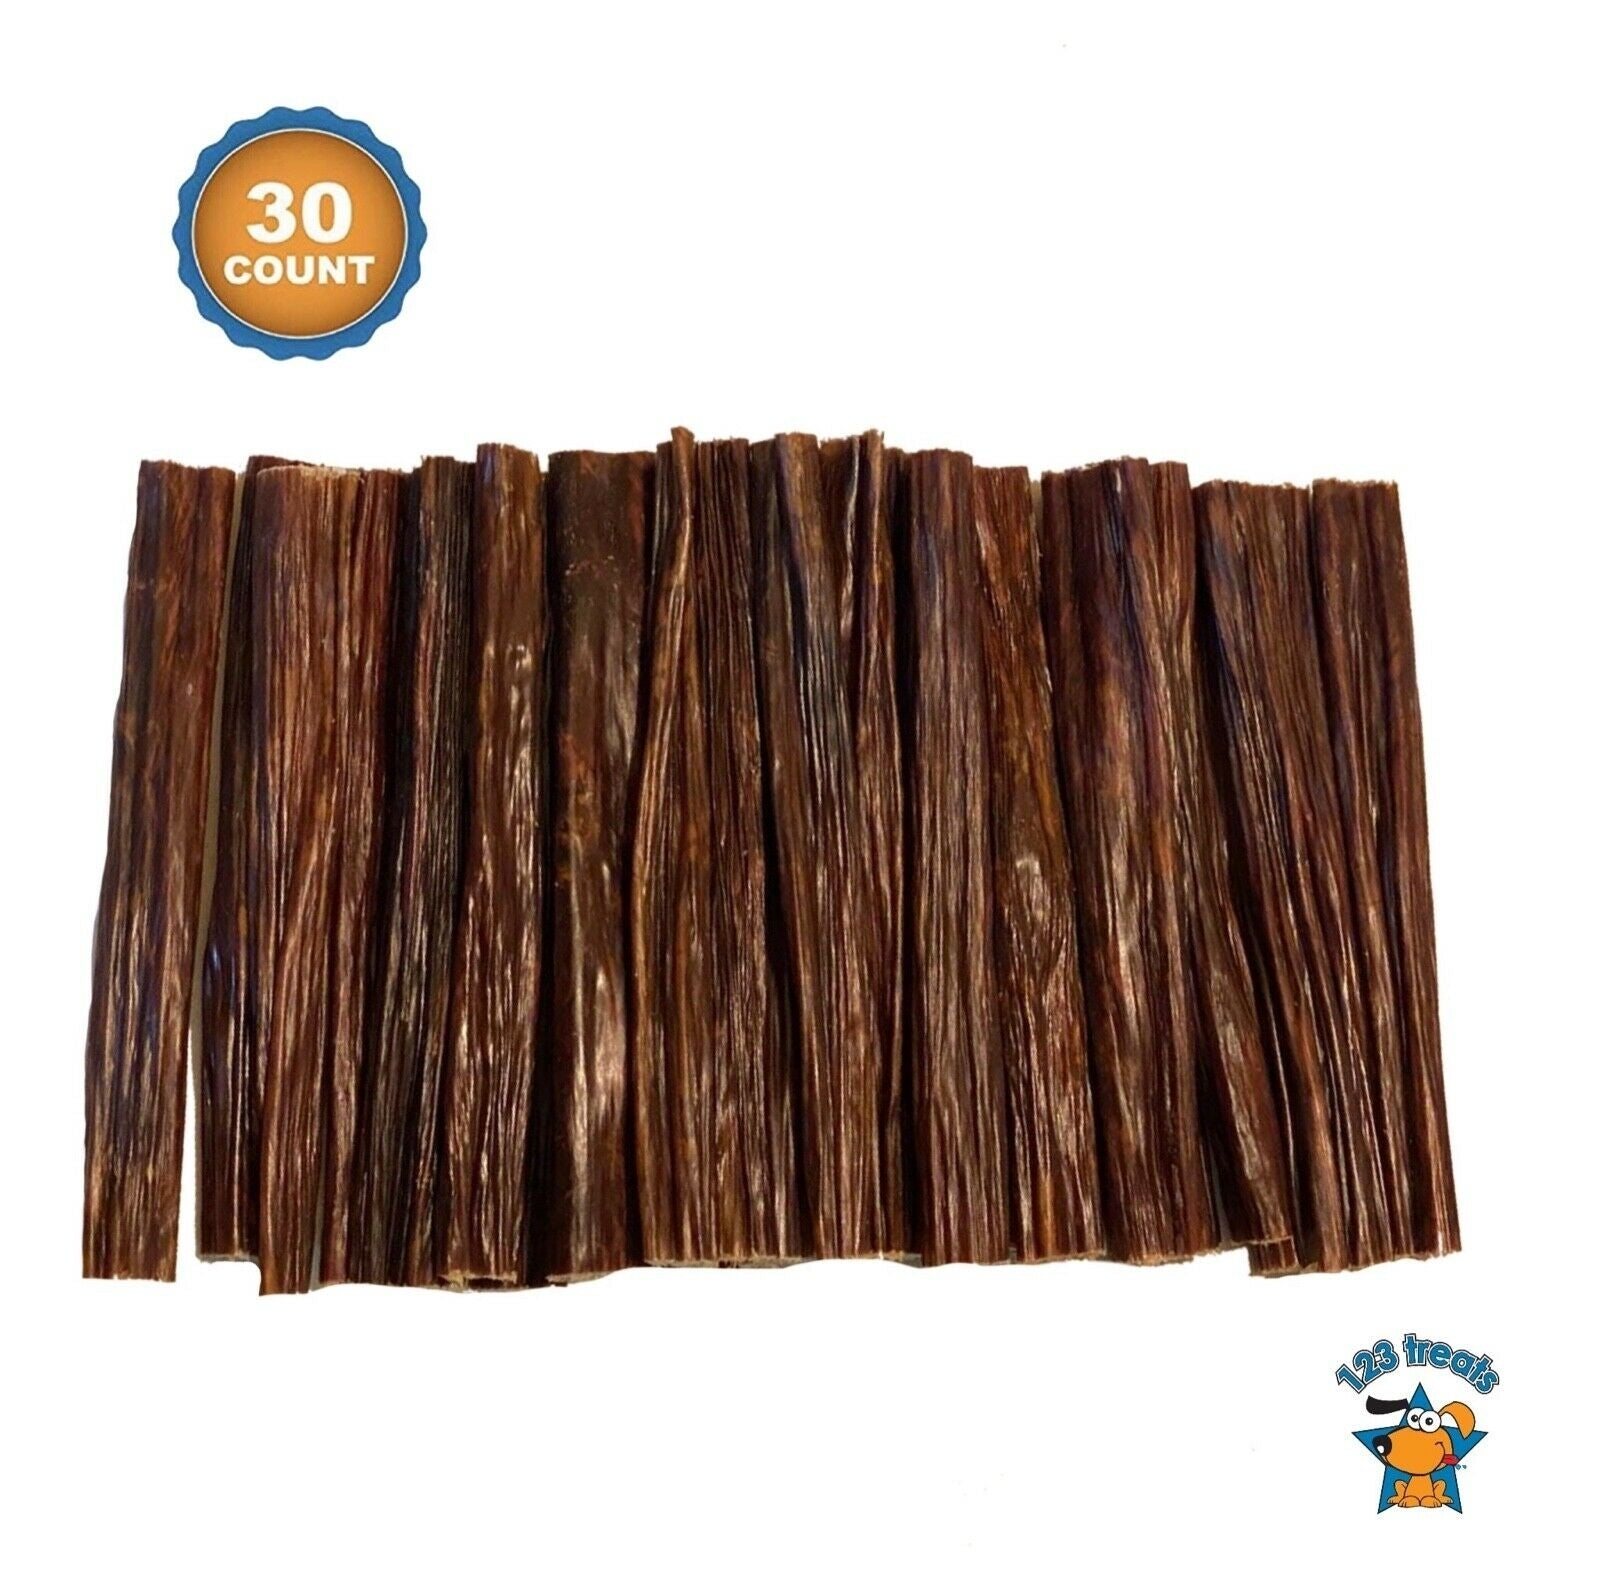 Beef Stick Dog Treats - 100% Natural Esophagus Chews for Dogs (6 inches 10 or 30 Count)